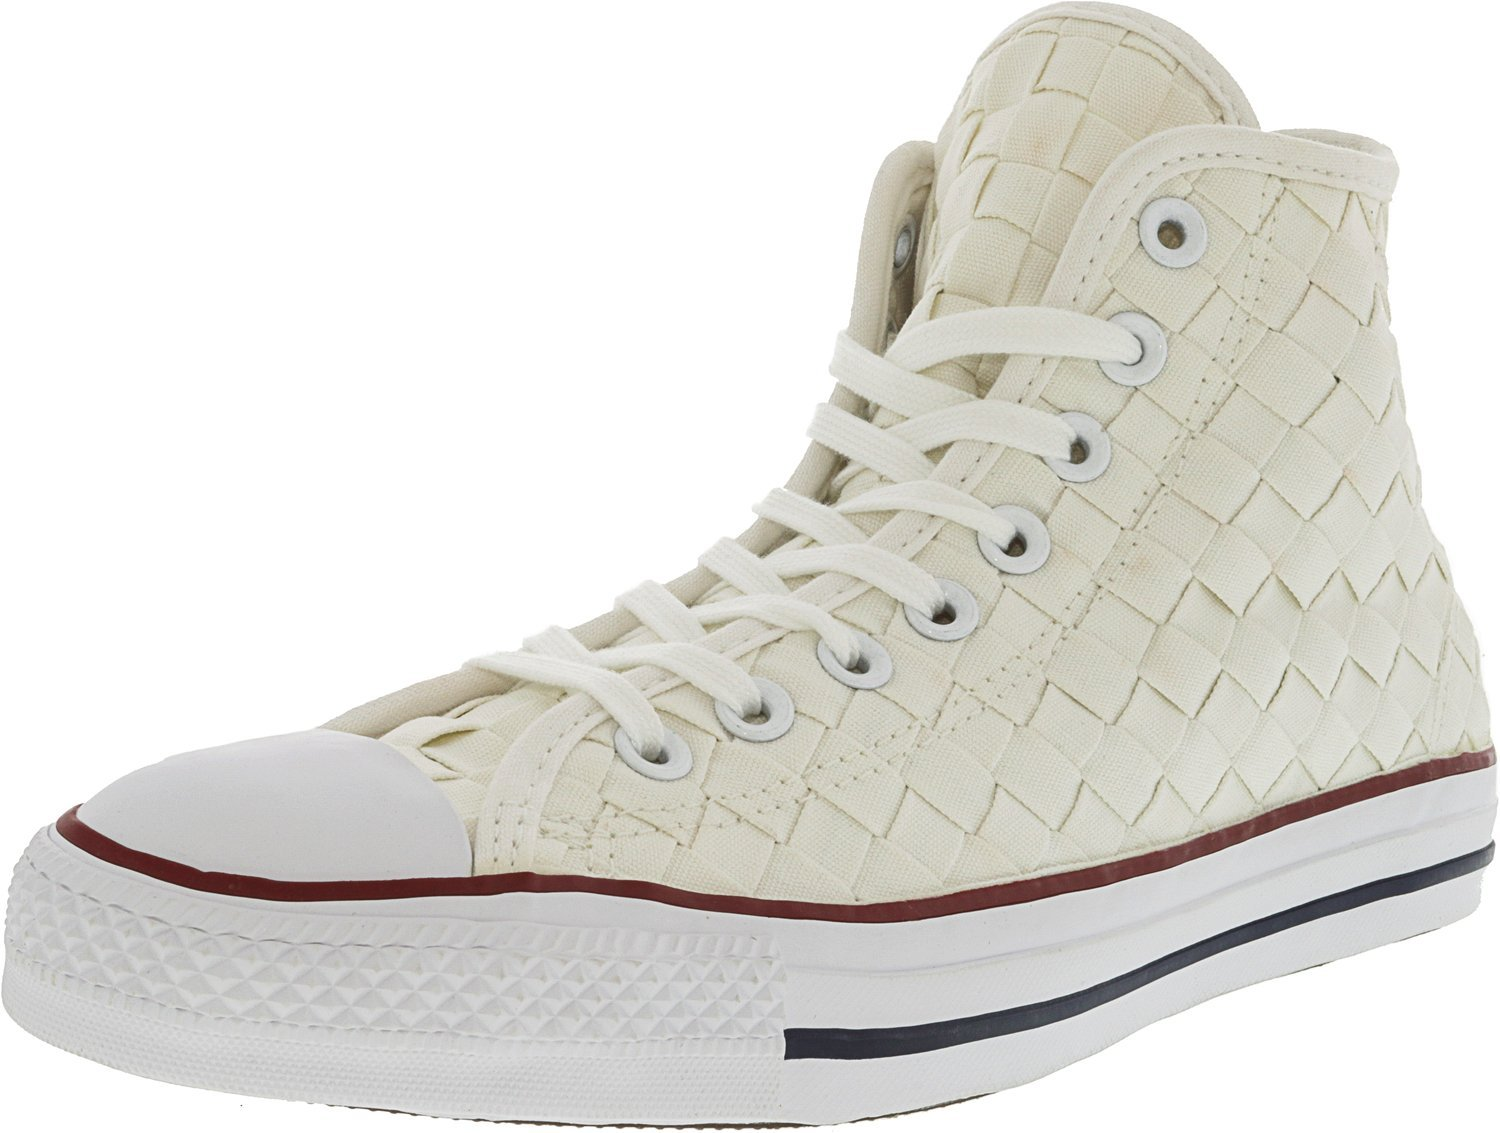 Converse Chuck Taylor All Star Core Hi B01F5H2UC8 9.5 M US Women / 7.5 M US Men|White / Red / White